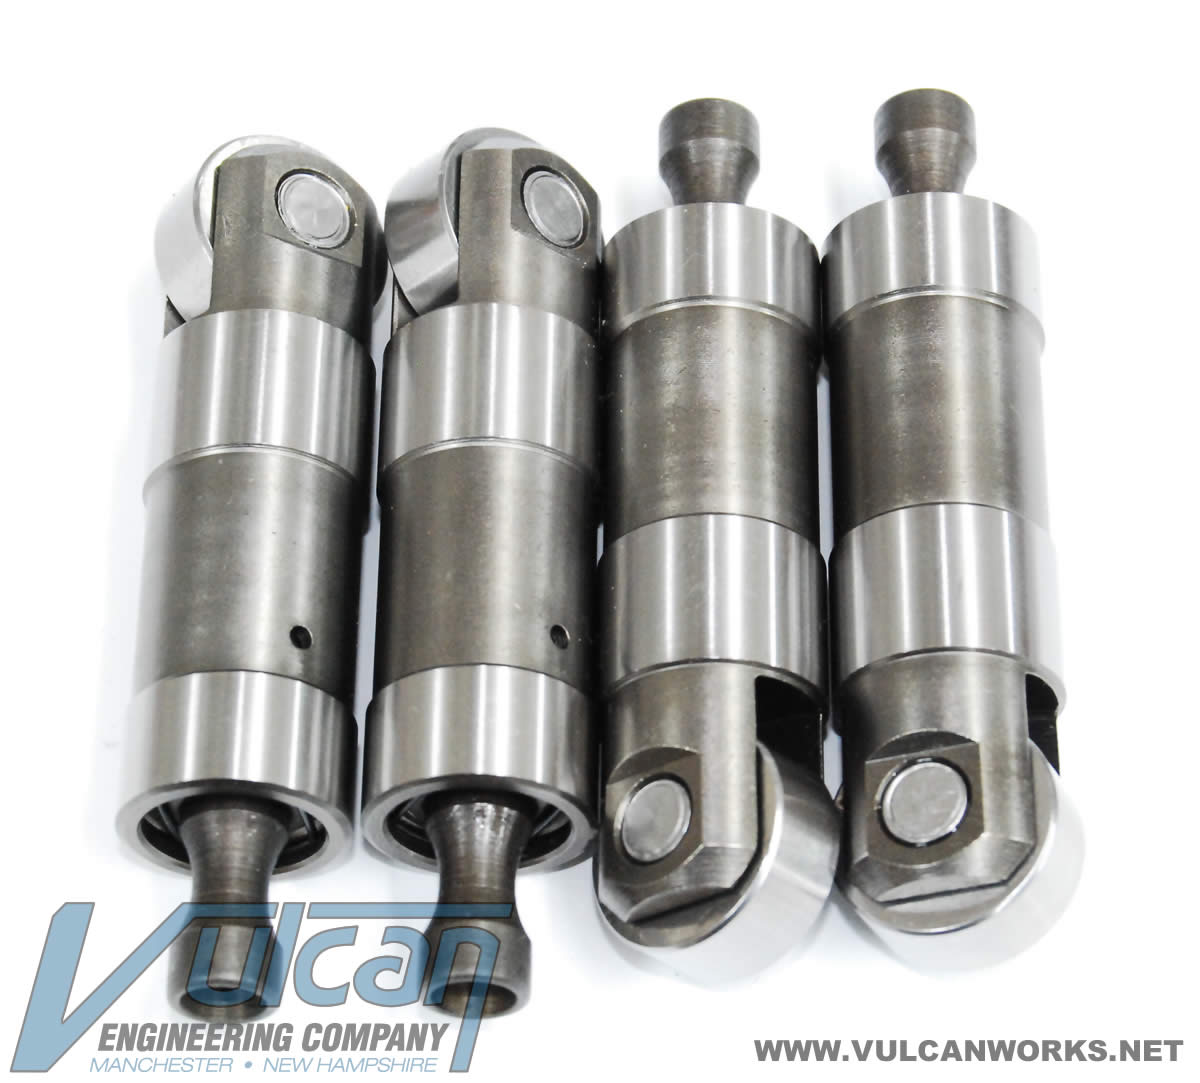 Replacement Lifter Set for our Tappet Blocks